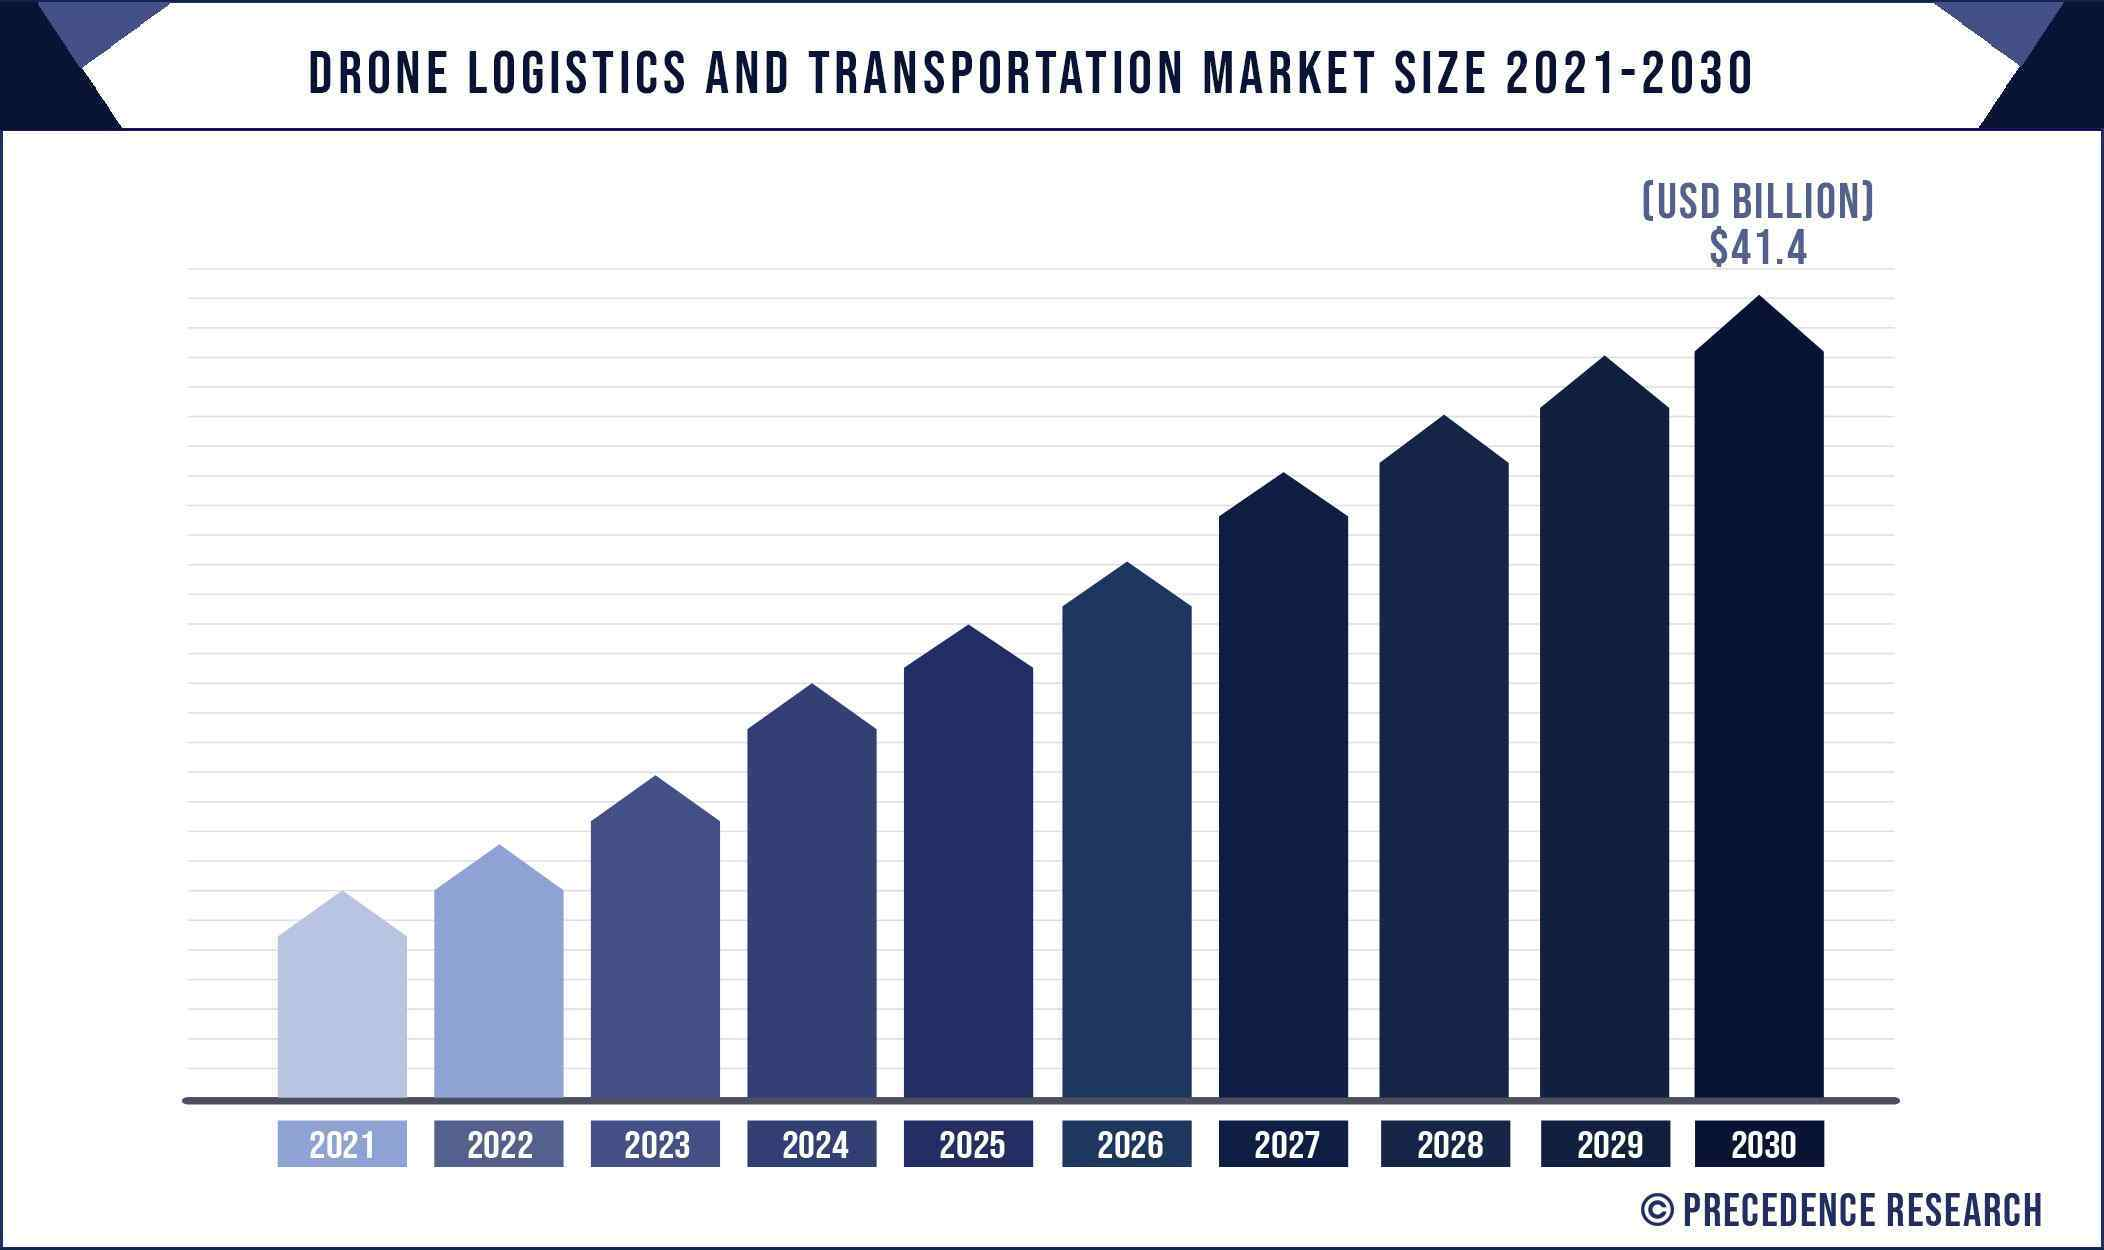 Drone Logistics and Transportation Market Size 2021 to 2030